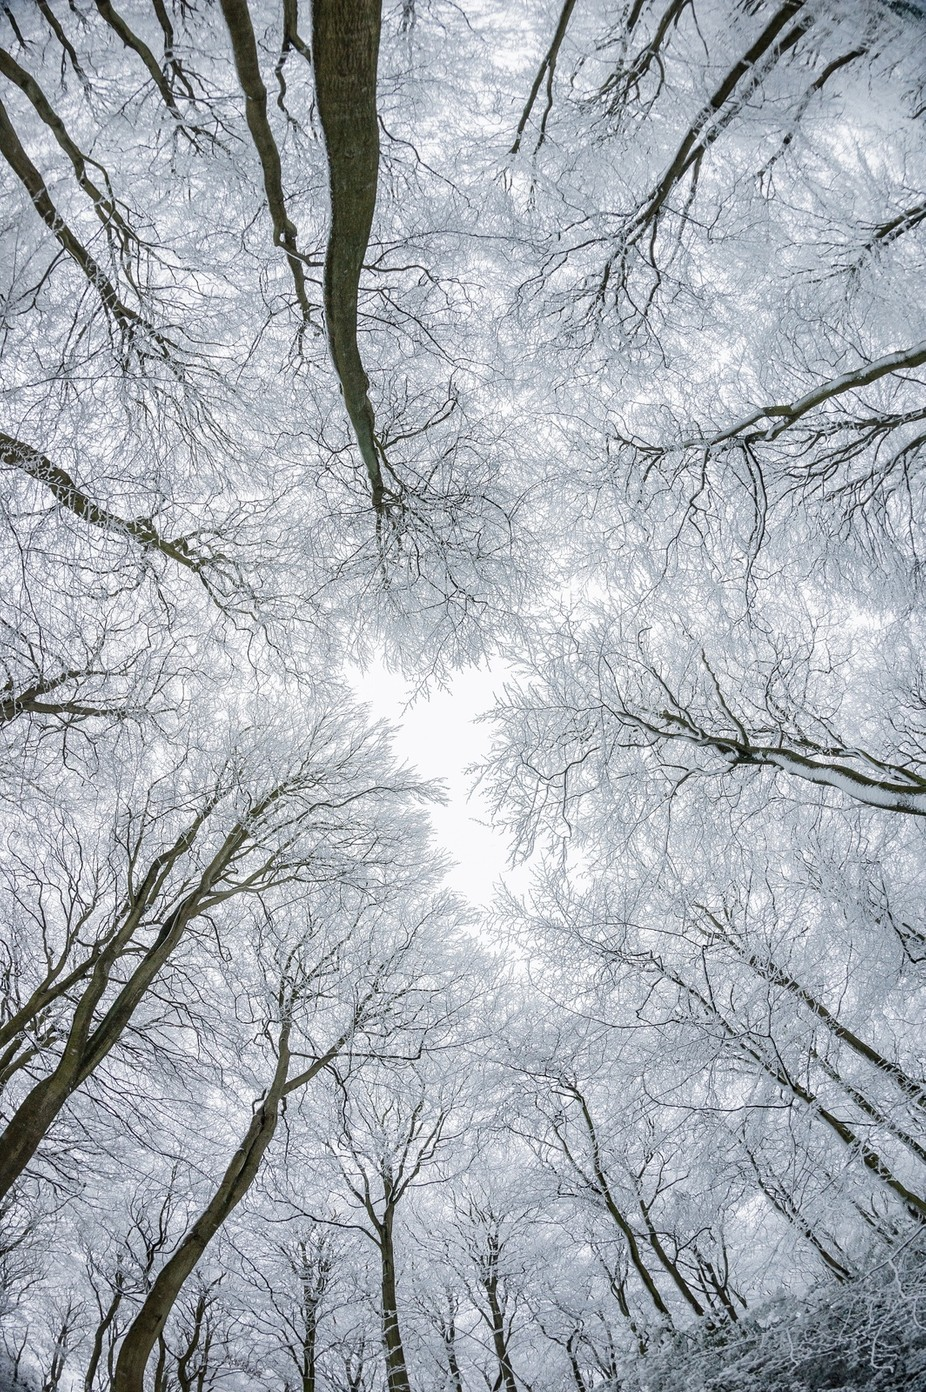 Looking up from snow covered trees with wide angle lens